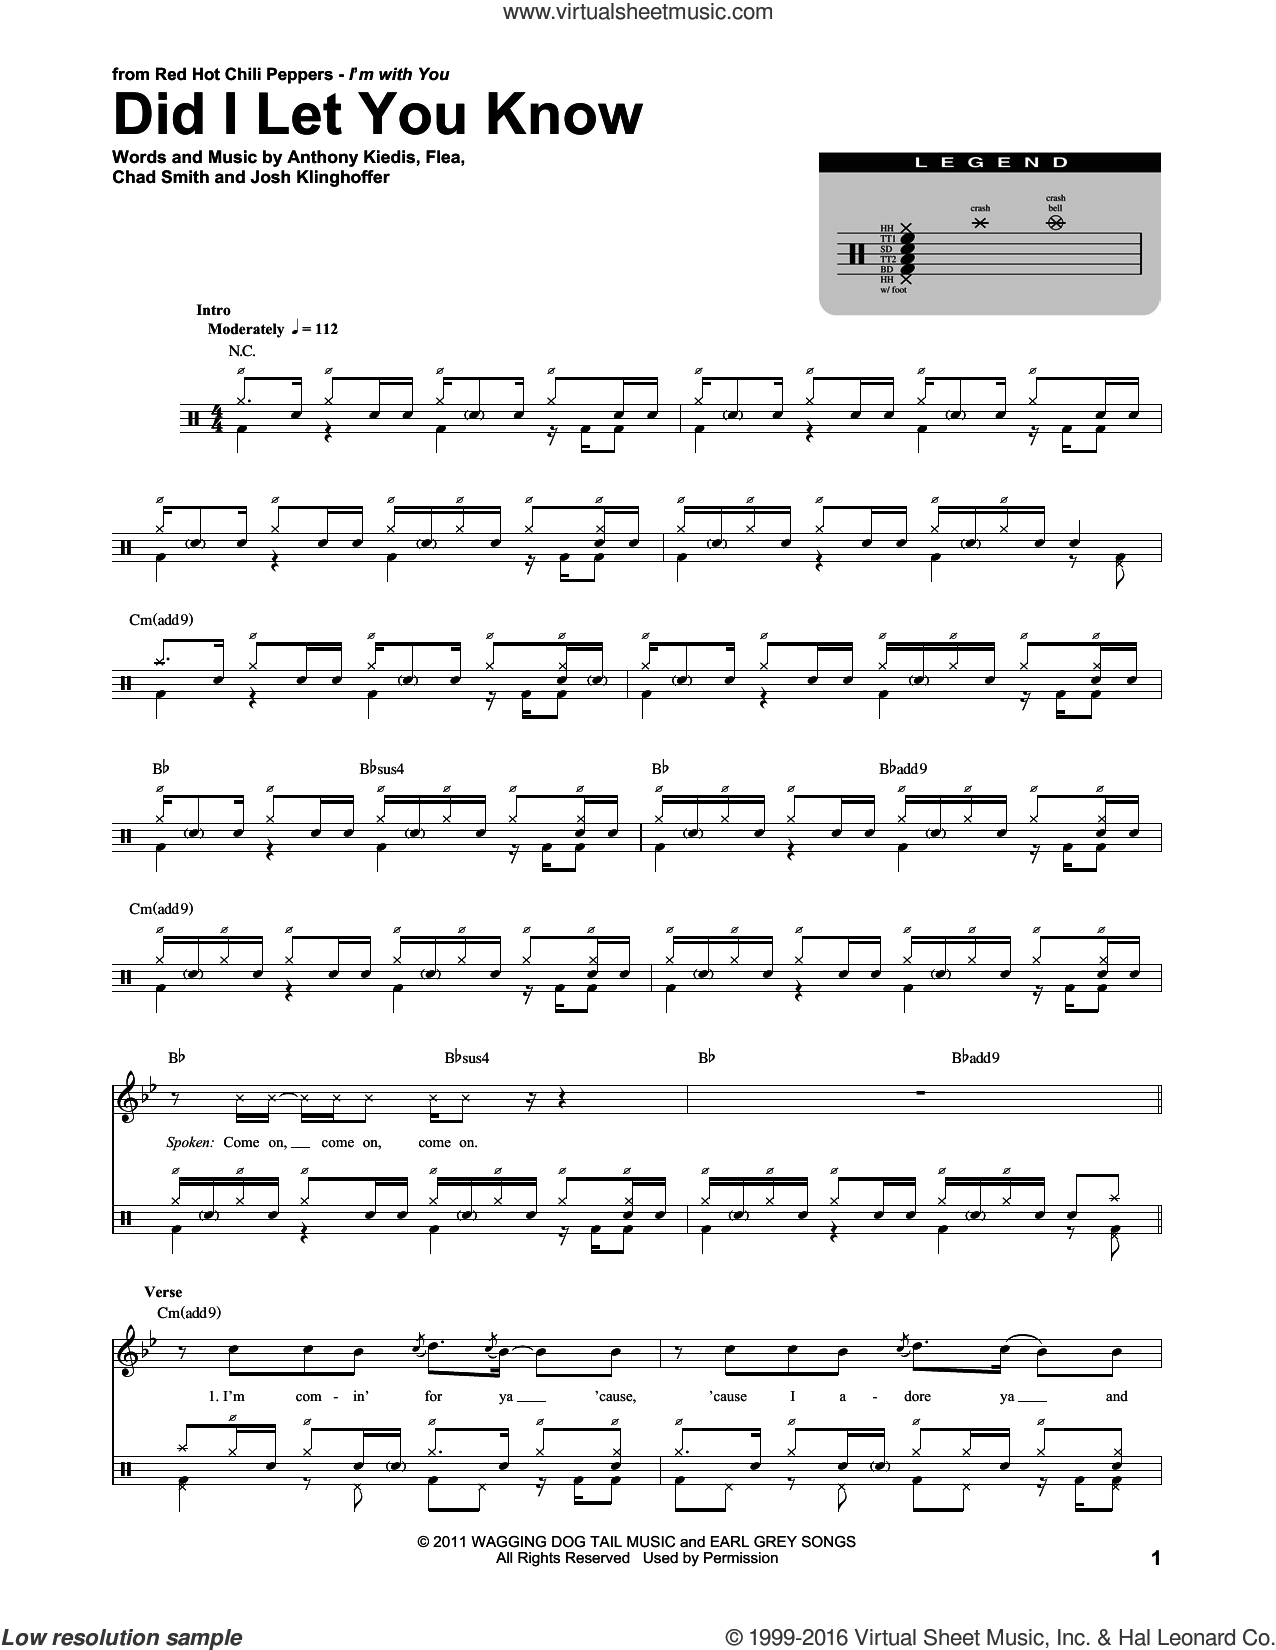 Did I Let You Know sheet music for drums by Josh Klinghoffer